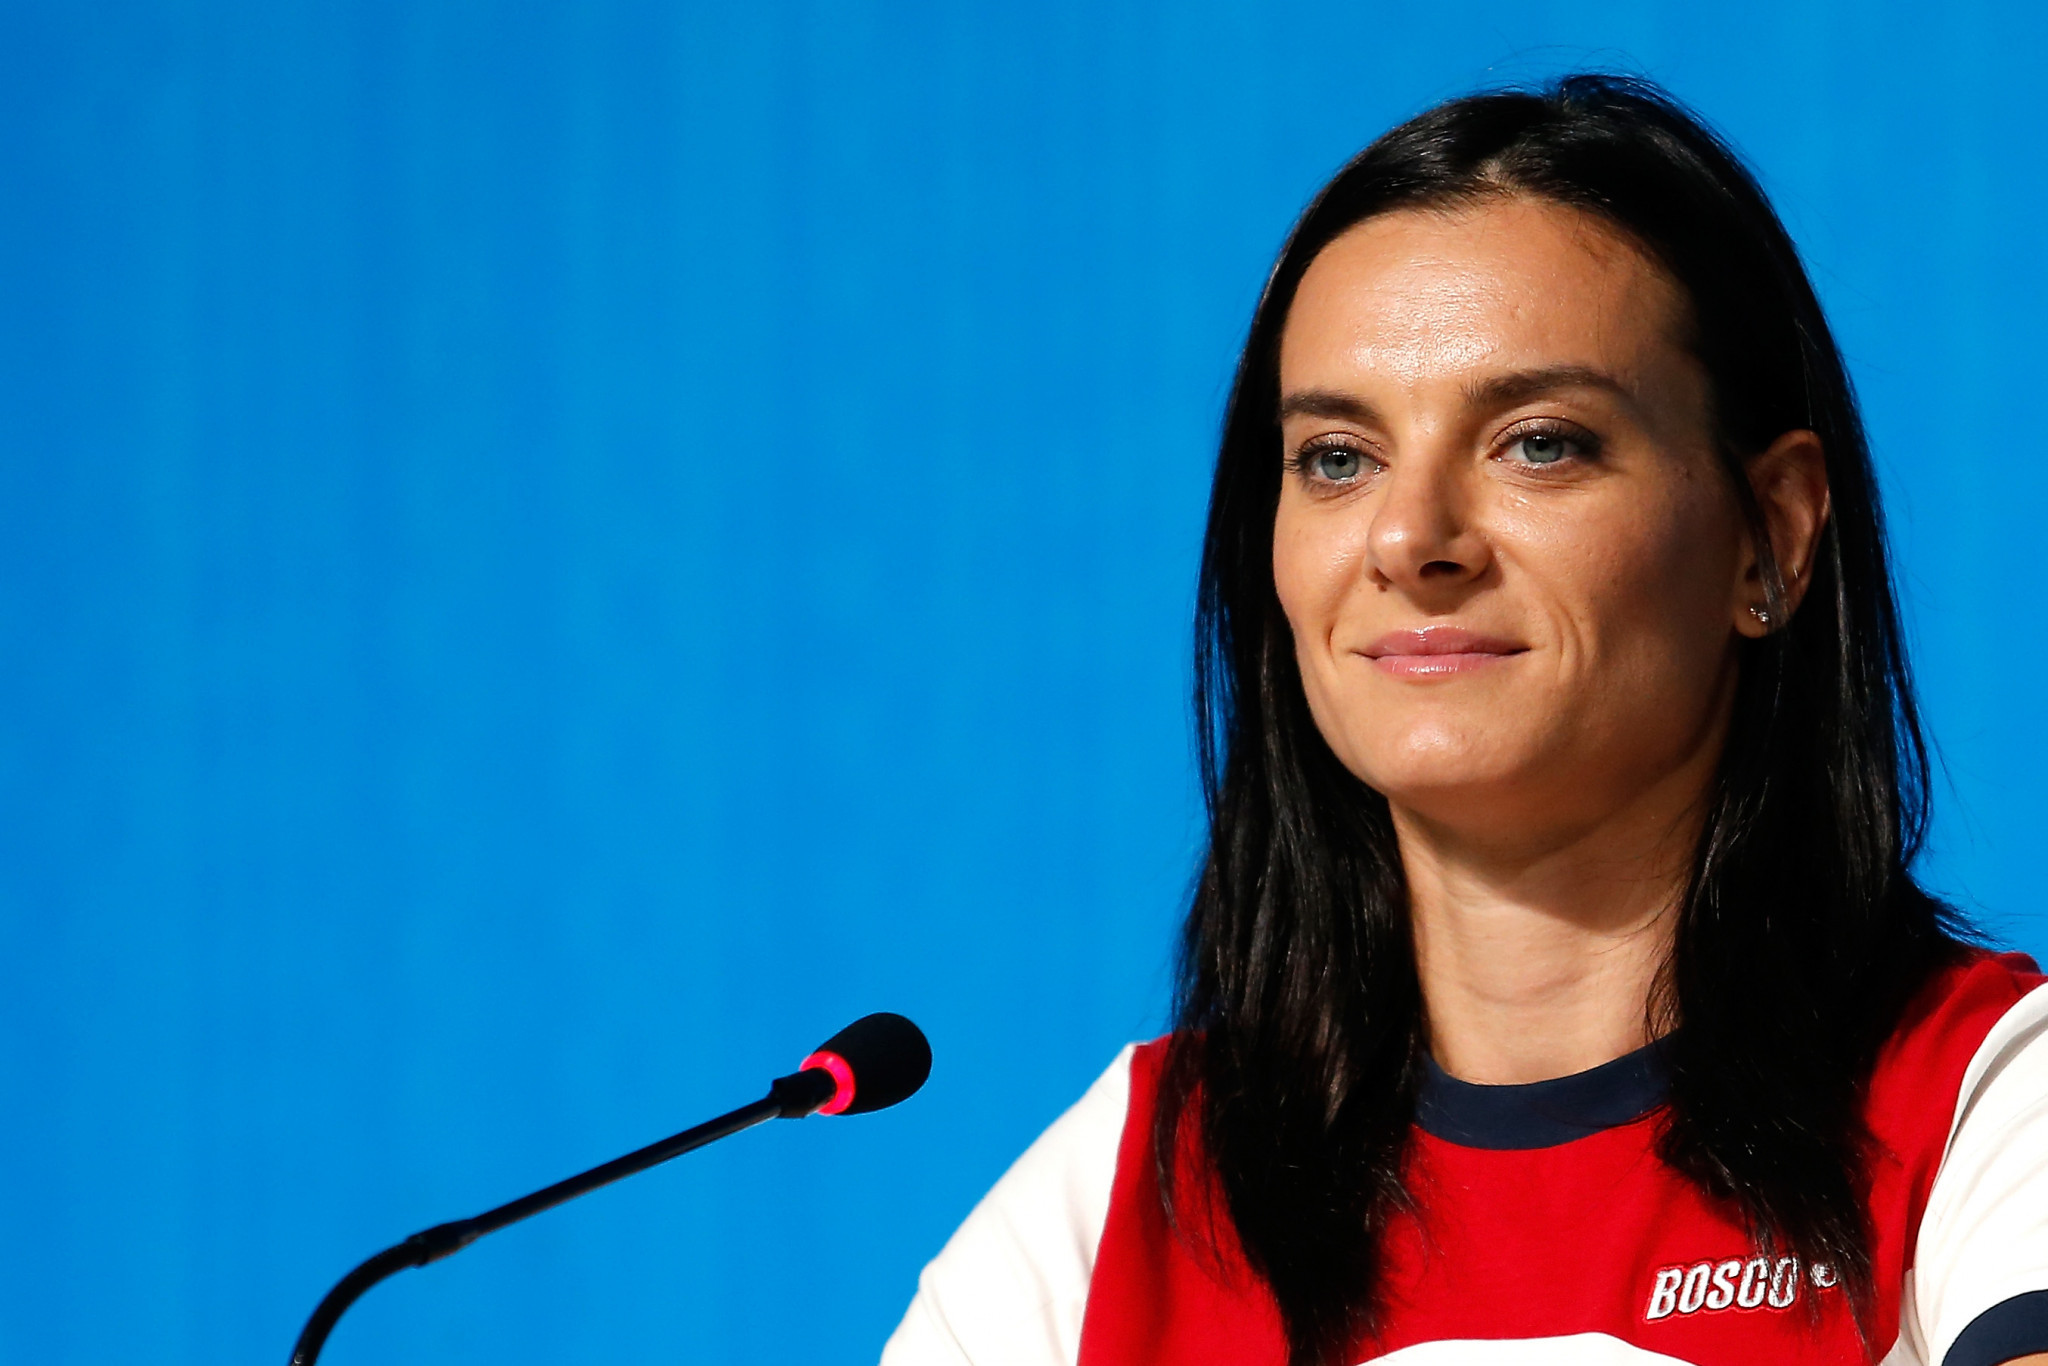 Russia's two-time Olympic pole vault champion Yelena Isinbayeva wrote an open letter to the IOC and World Athletics ©Getty Images